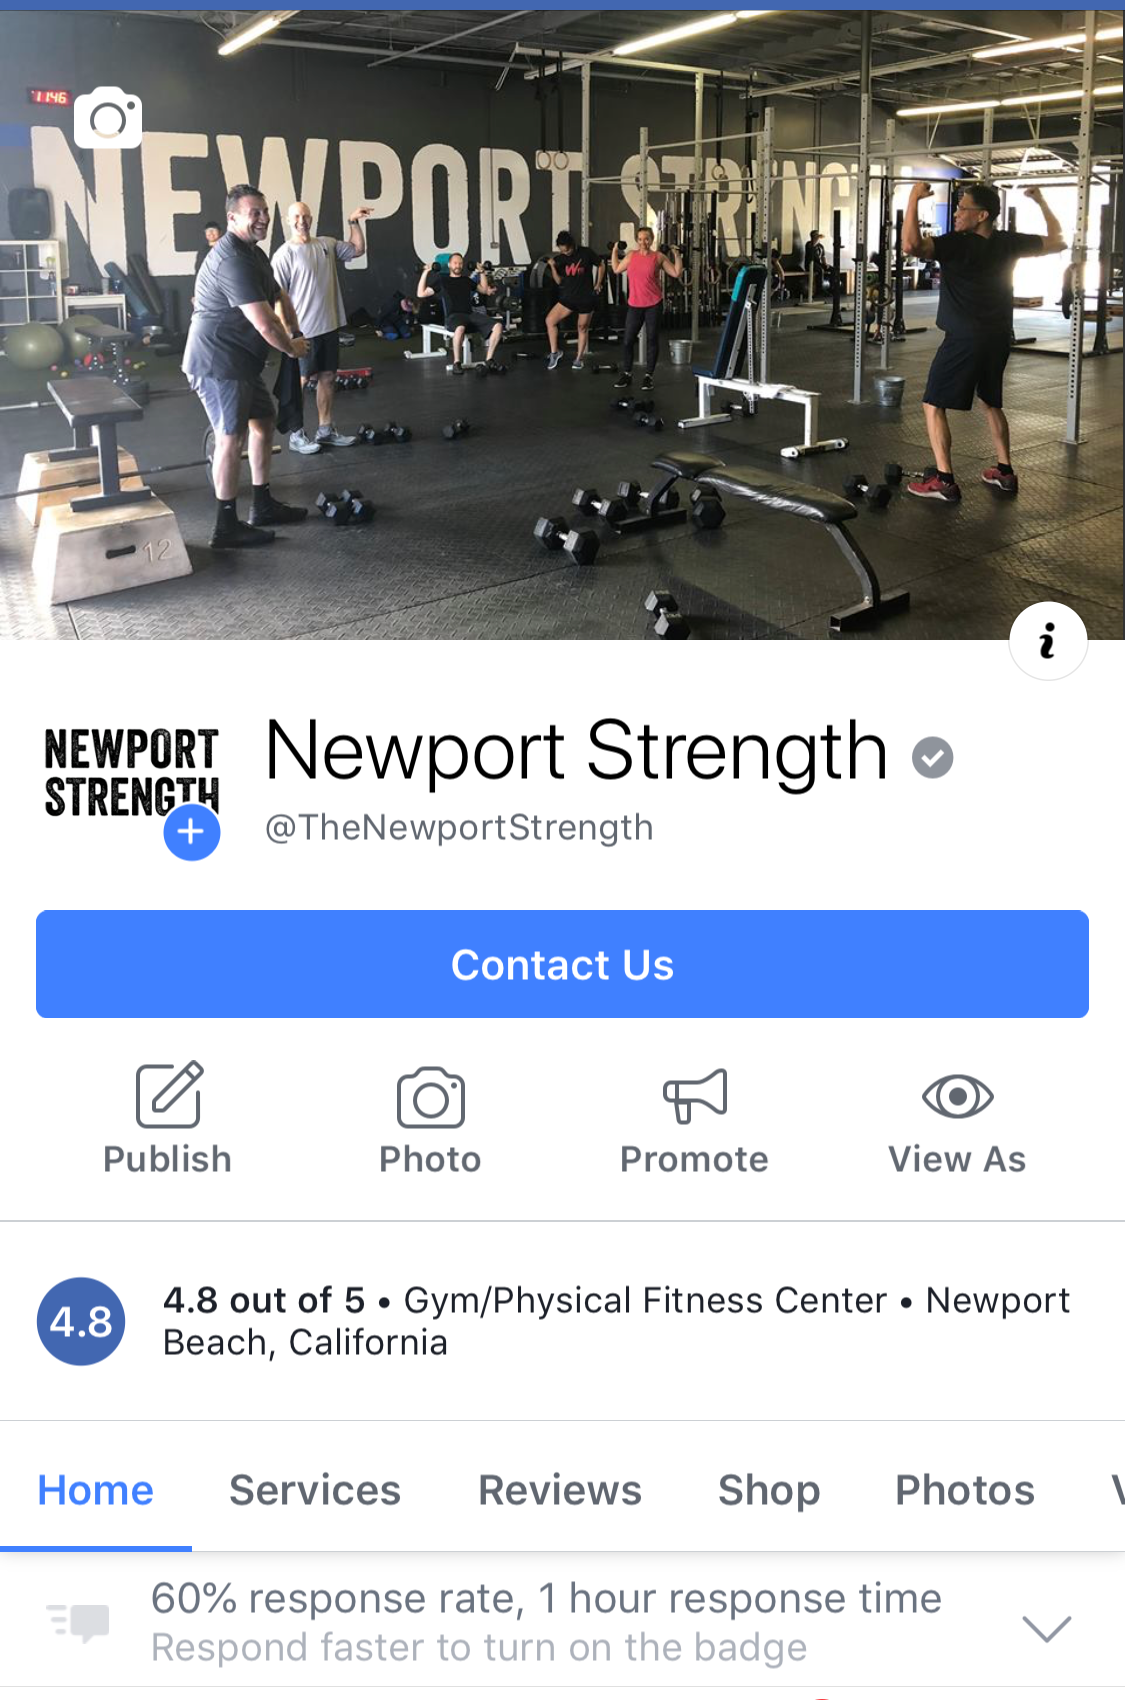 Newport Strength Facebook Page